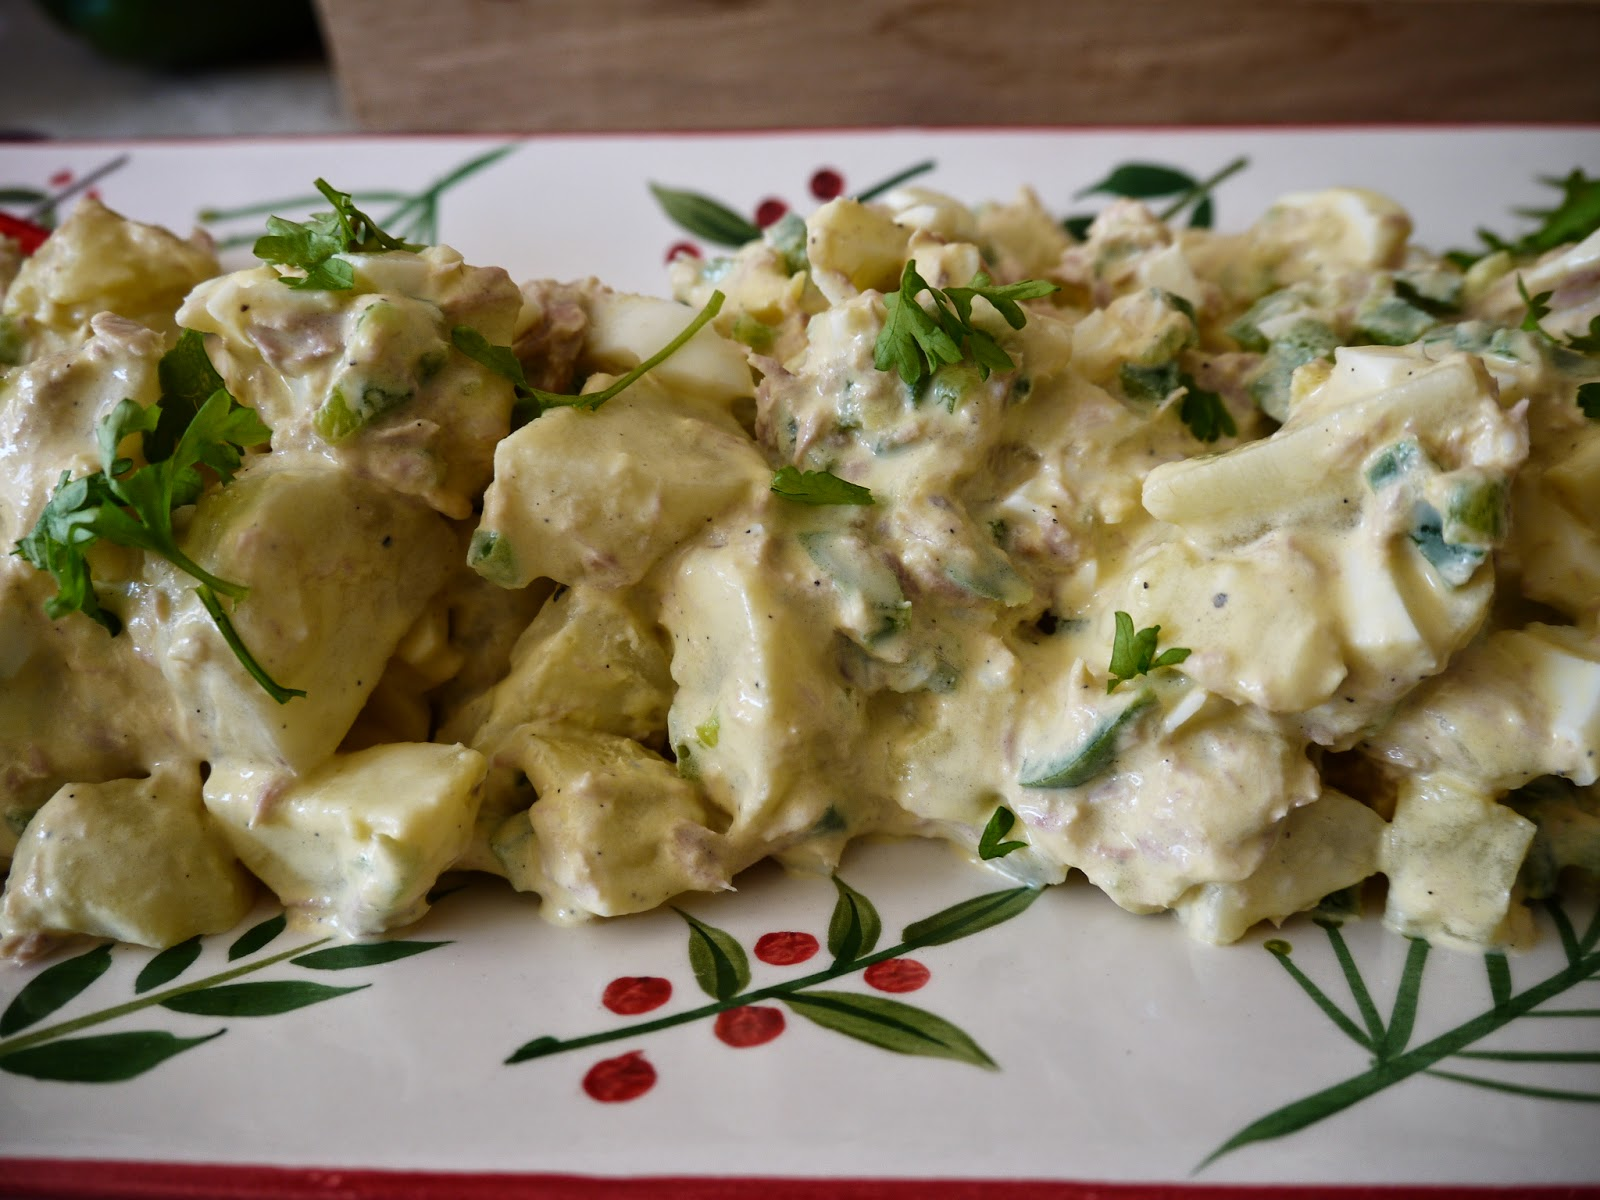 Delicious and healthy potatoes salad by Appetit Voyage